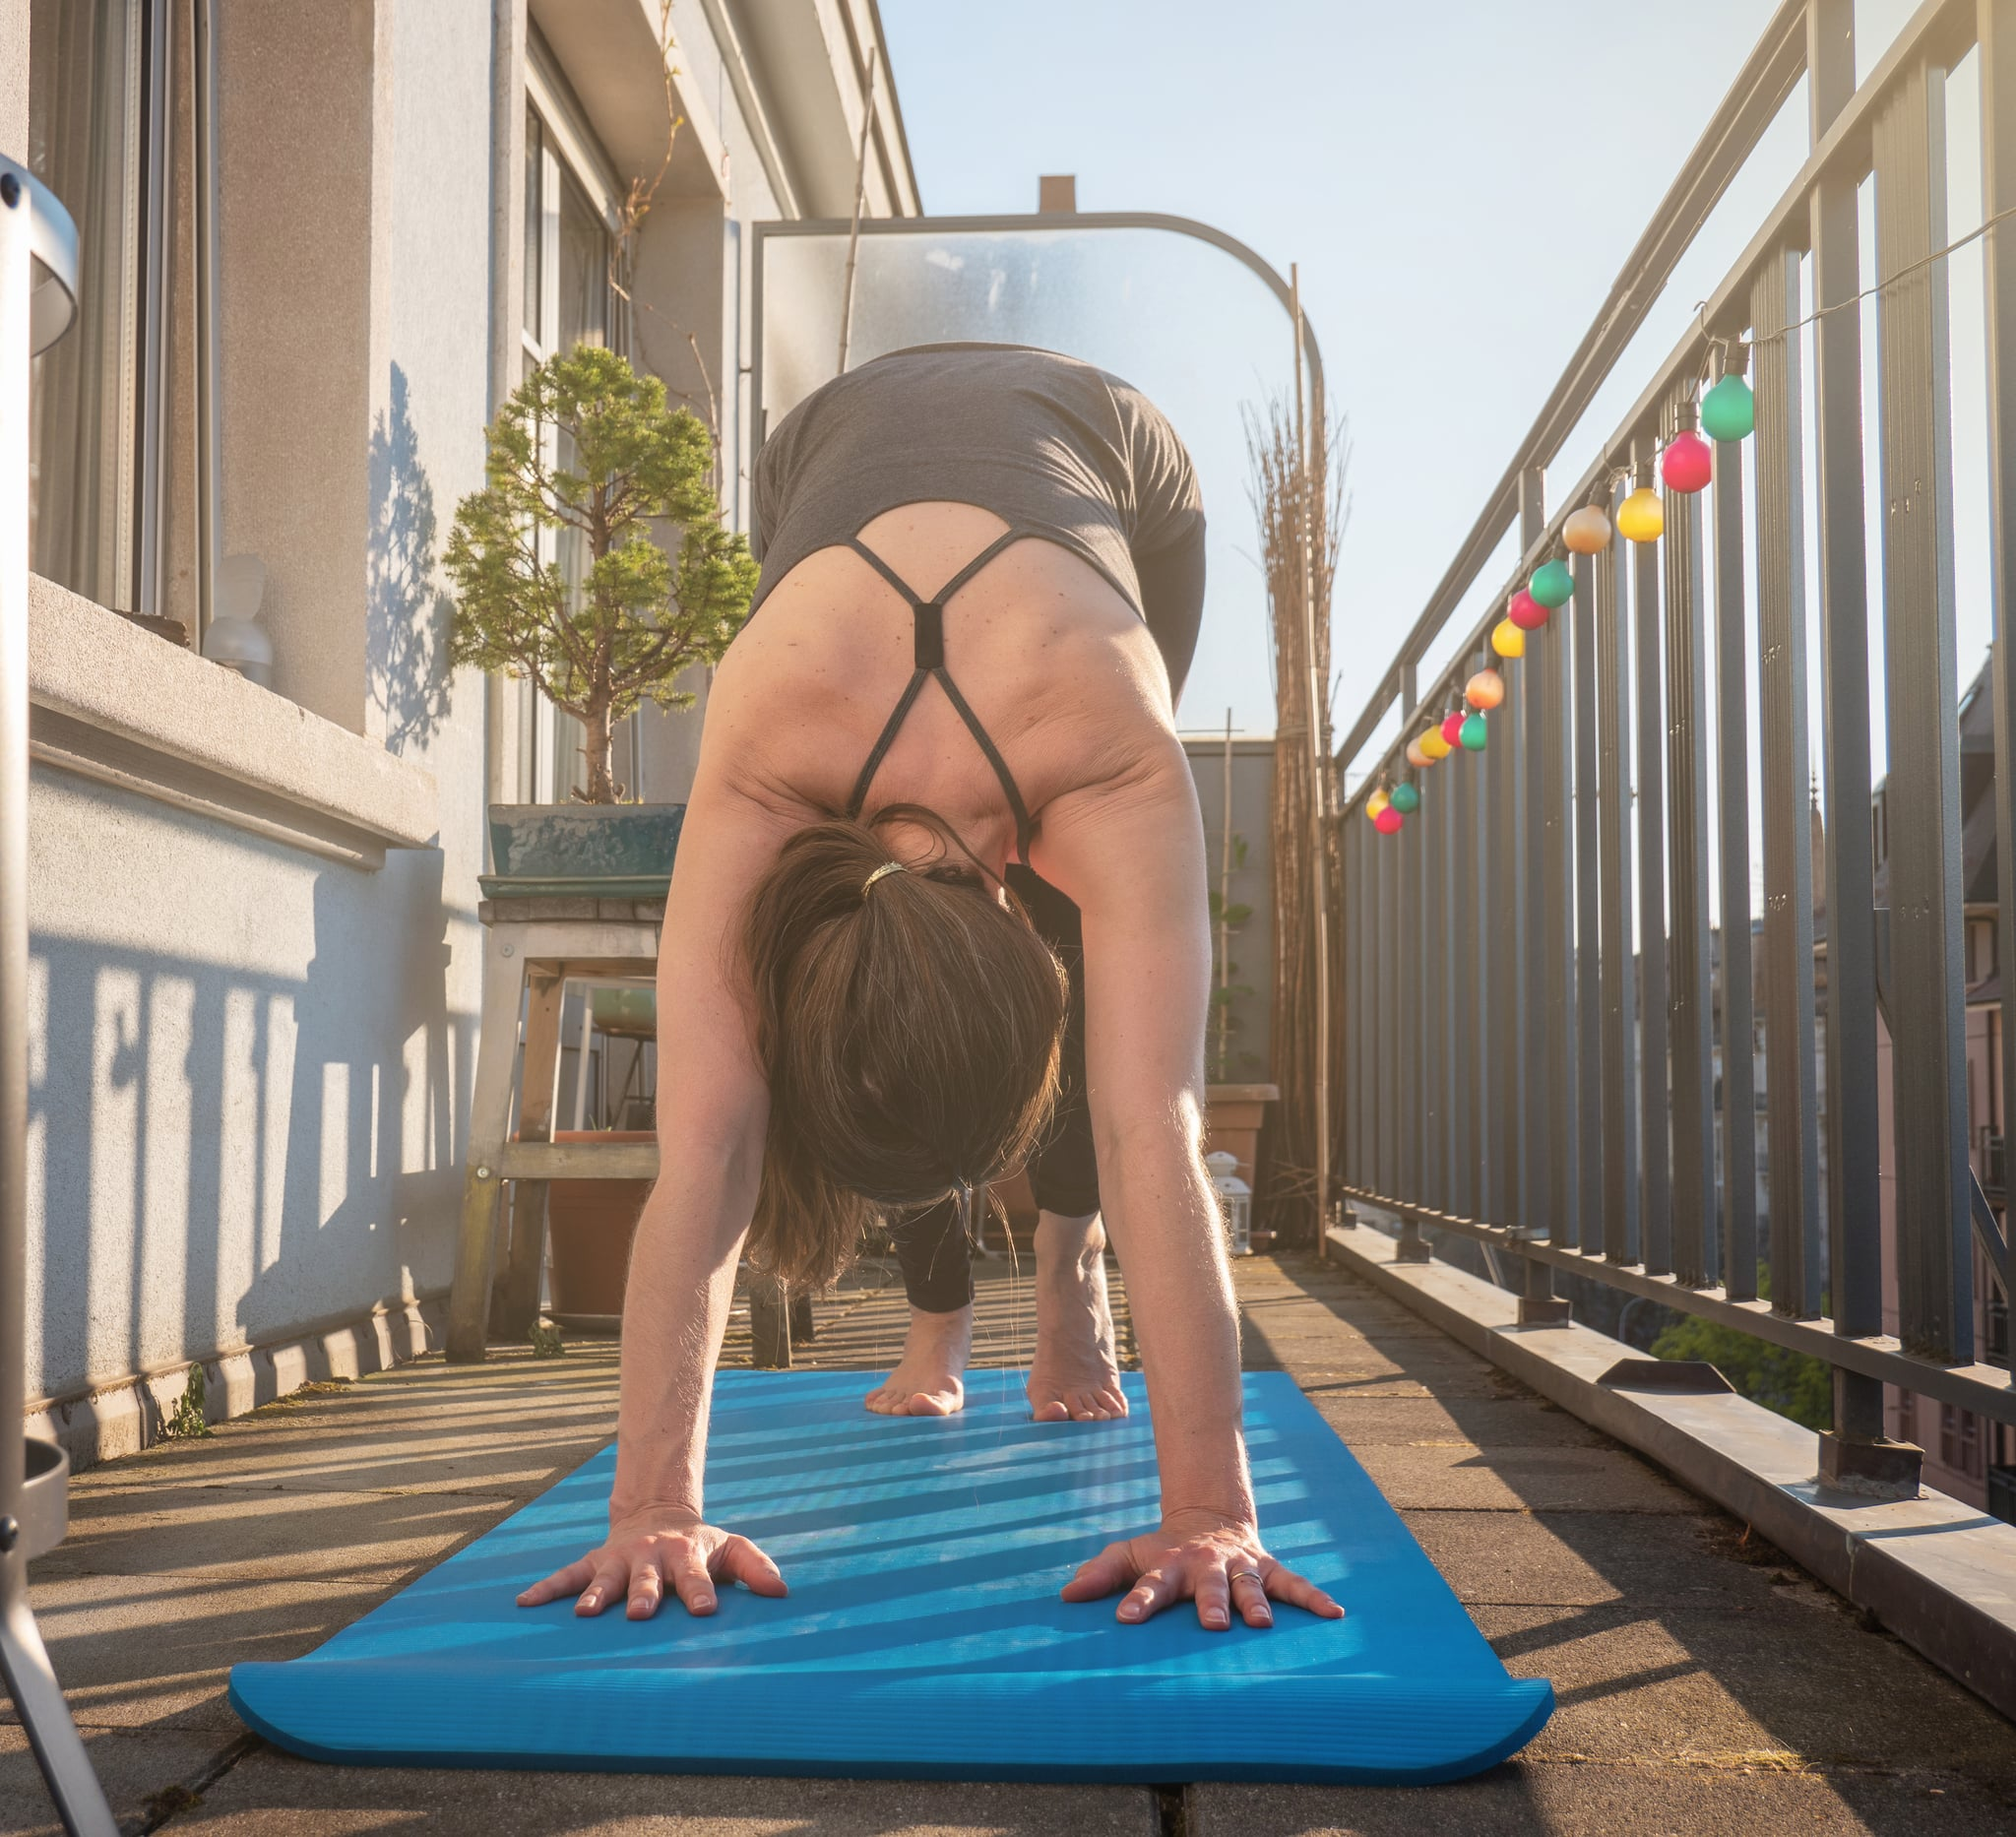 A woman practices yoga on the balcony of her apartment during the Covid-19 lock down in Geneva, Switzerland. The sun shines on the balcony as she maximizes the space available to work out from home.